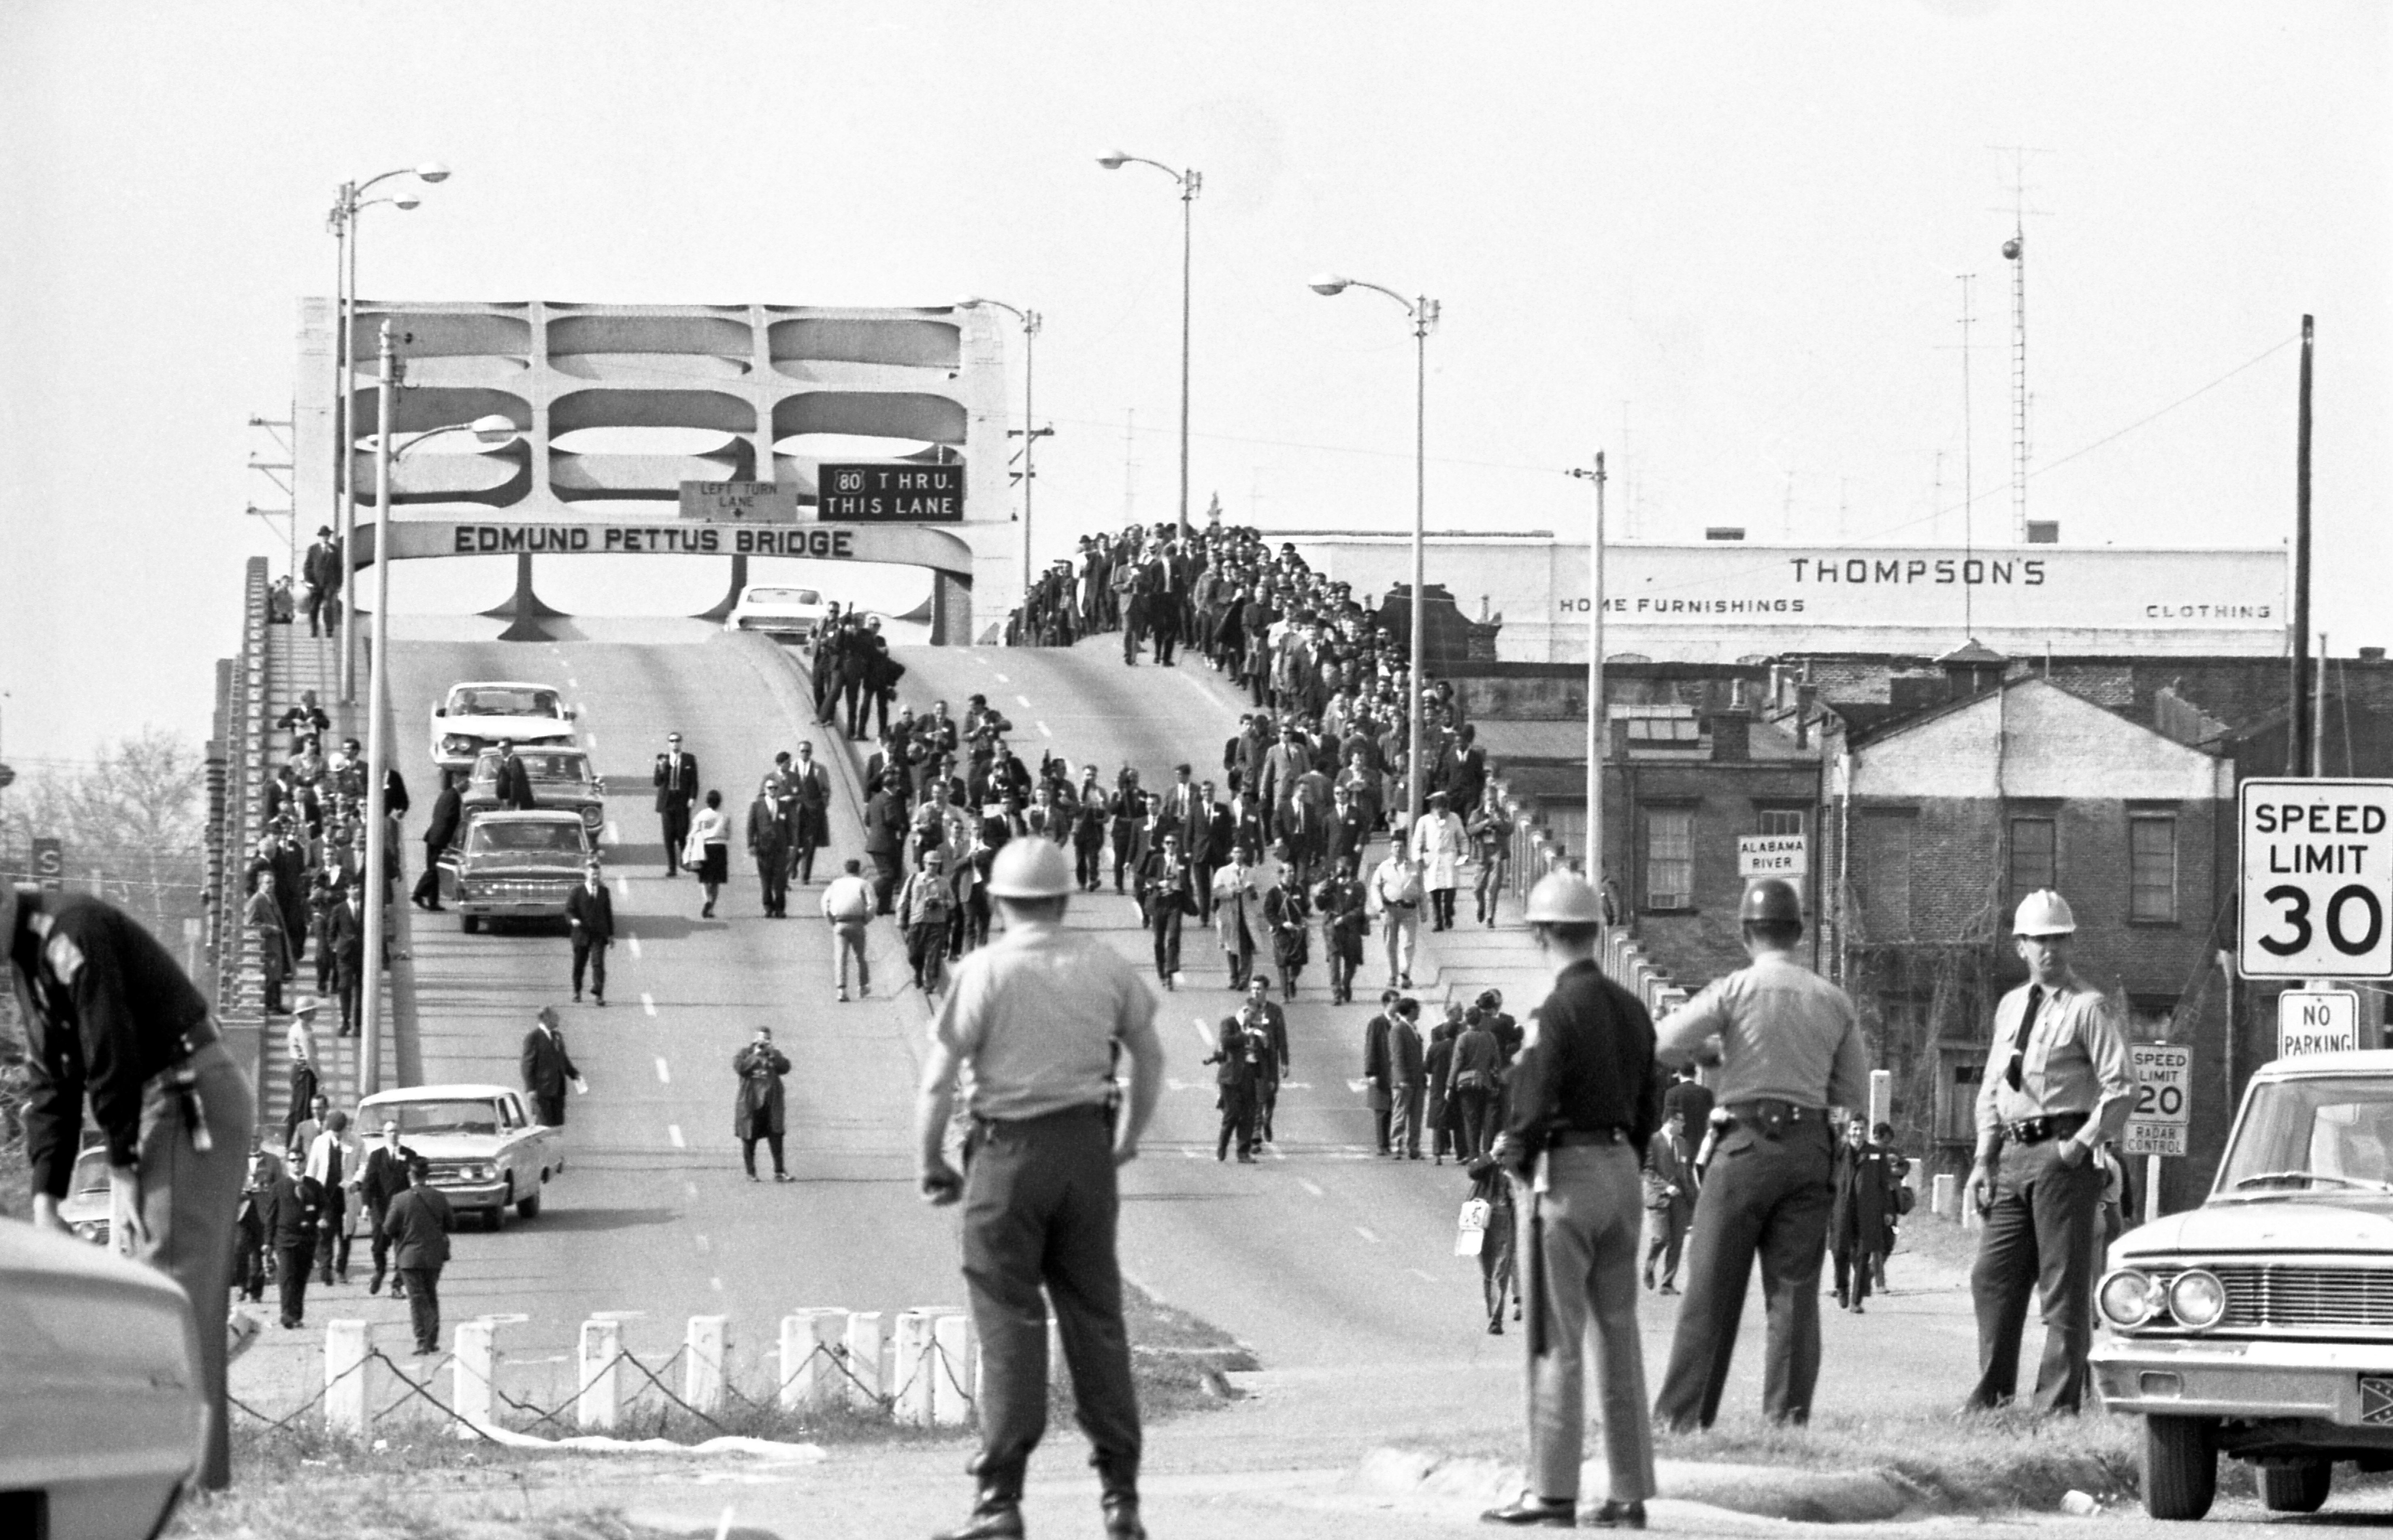 Demonstrators march across the Edmund Pettus Bridge in Selma, Alabama, on March 9, 1965, just two days after the violent back